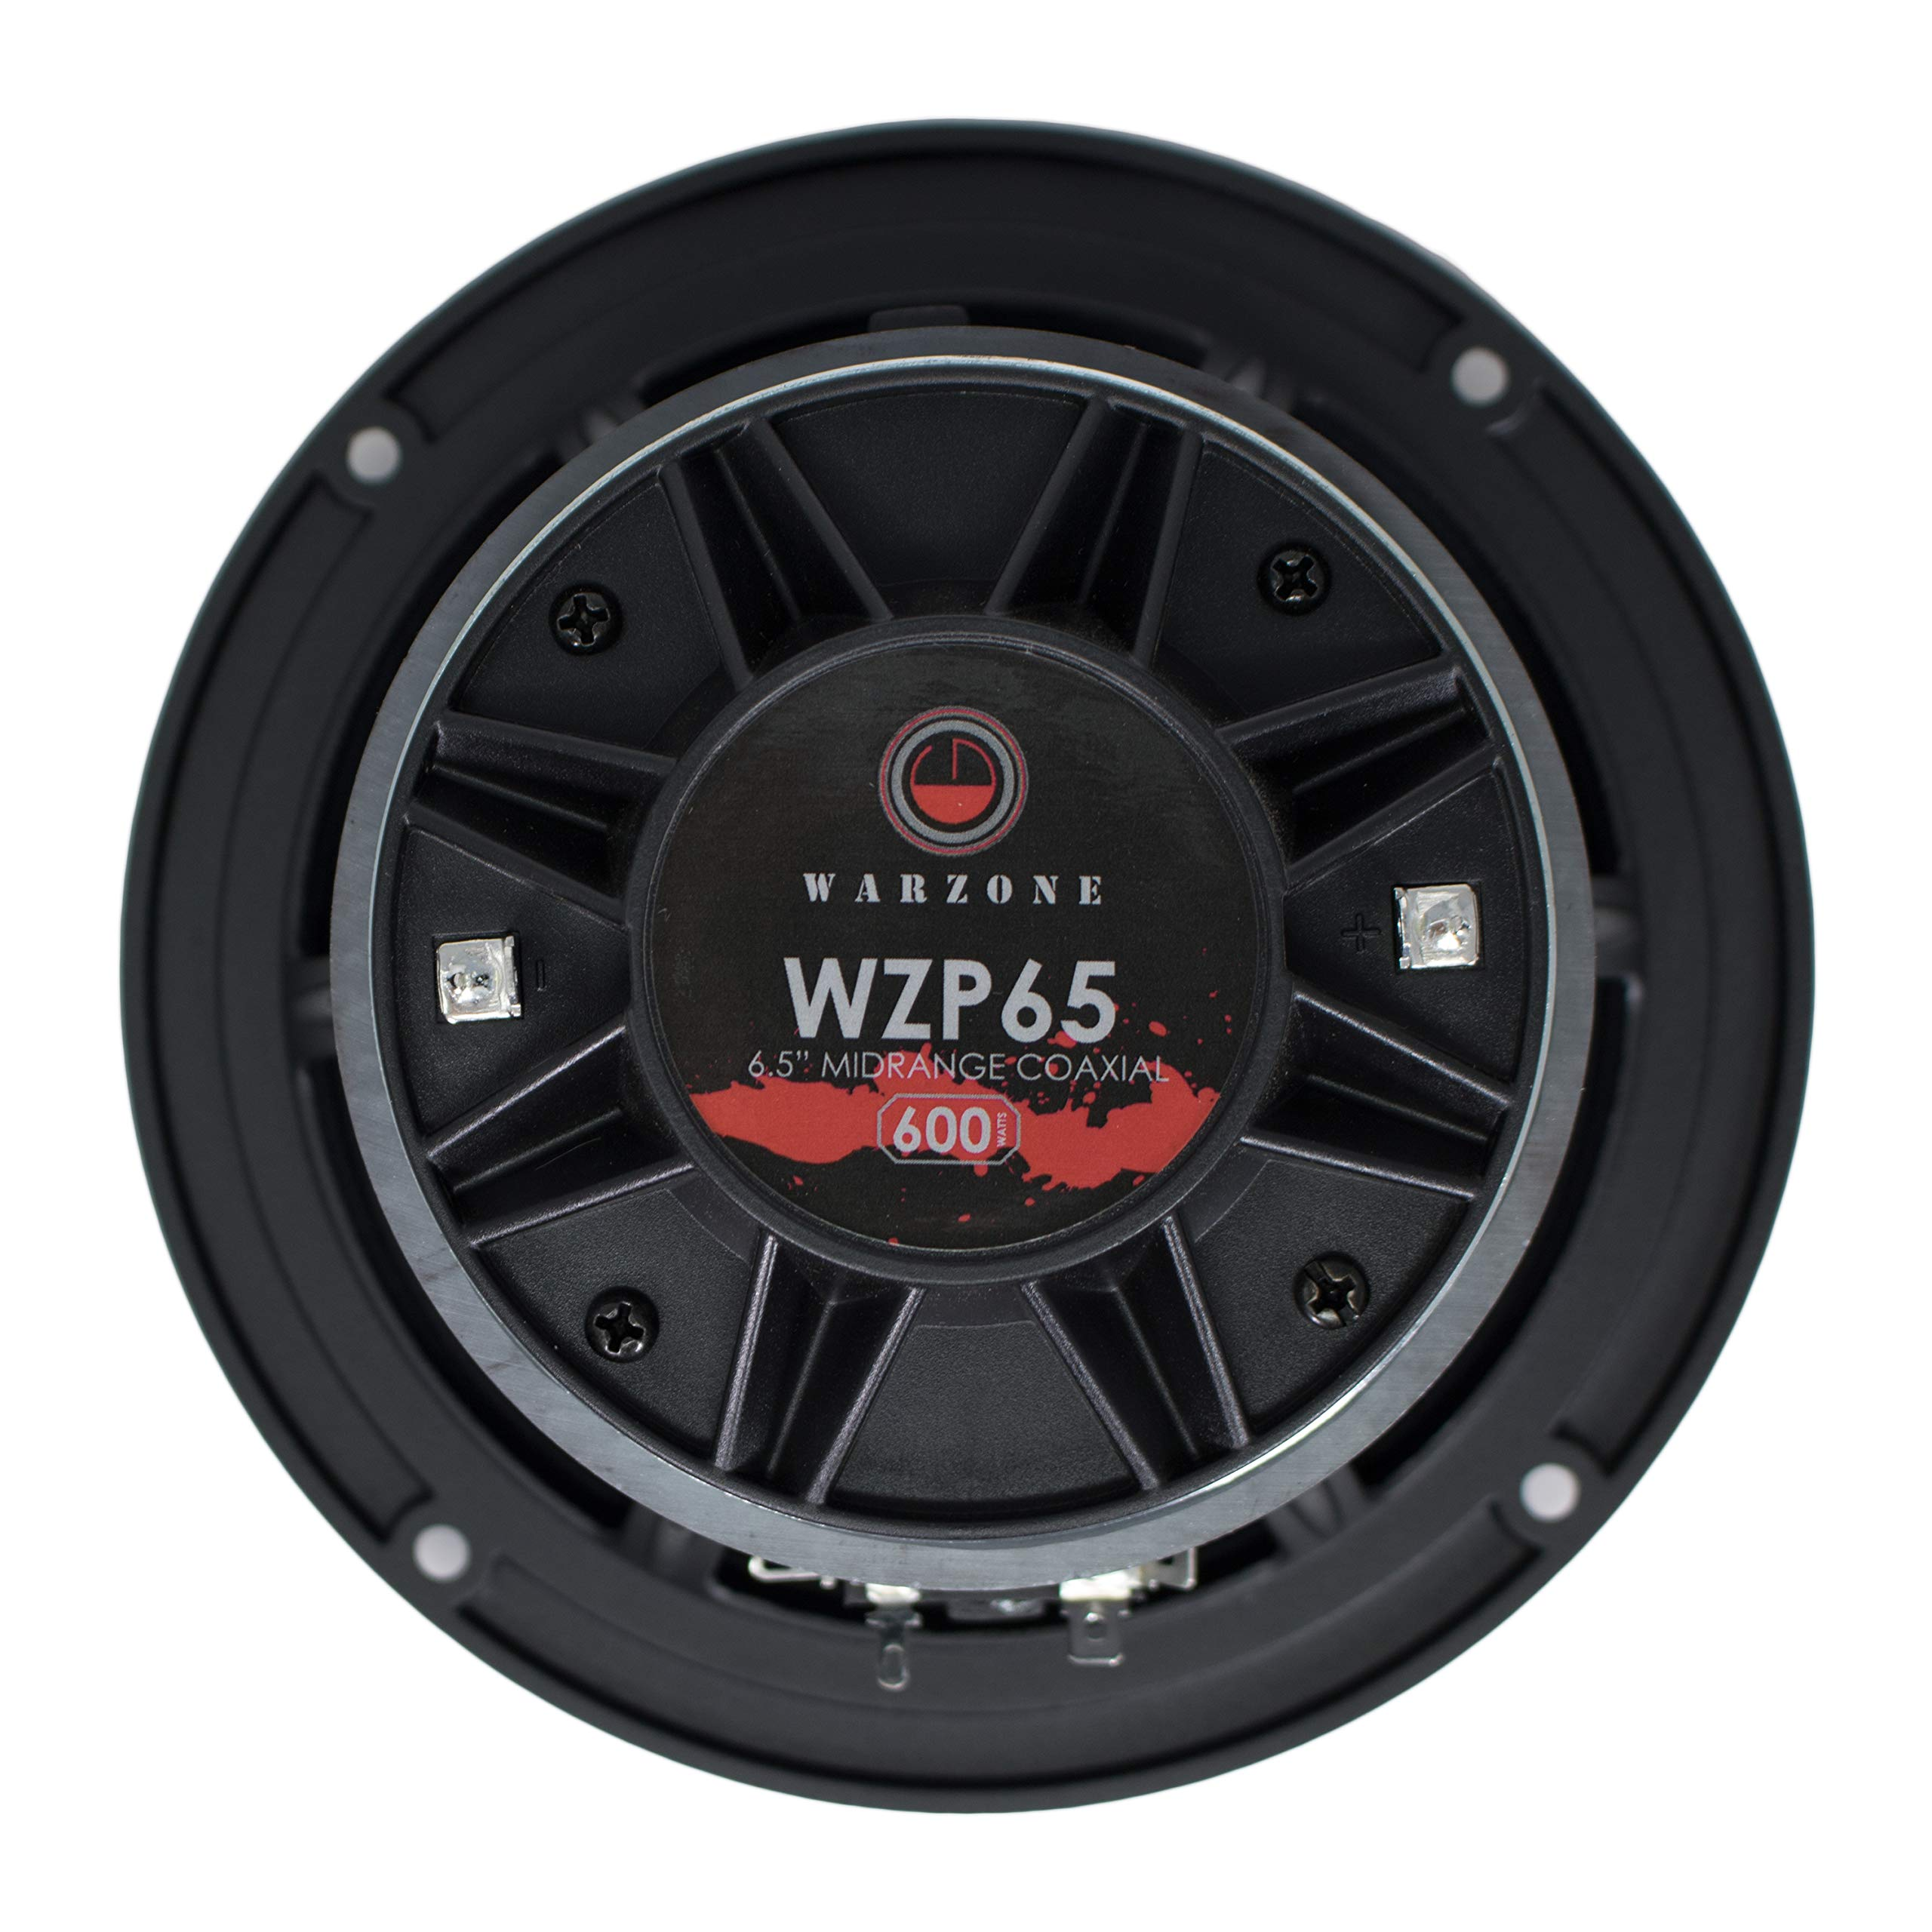 Gravity Warzone Series 6.5'' inch Pro Midrange Coaxial Loud Speaker 4-Ohms with 600W Max, 1 Speaker WZP65 by Gravity Professional (Image #4)